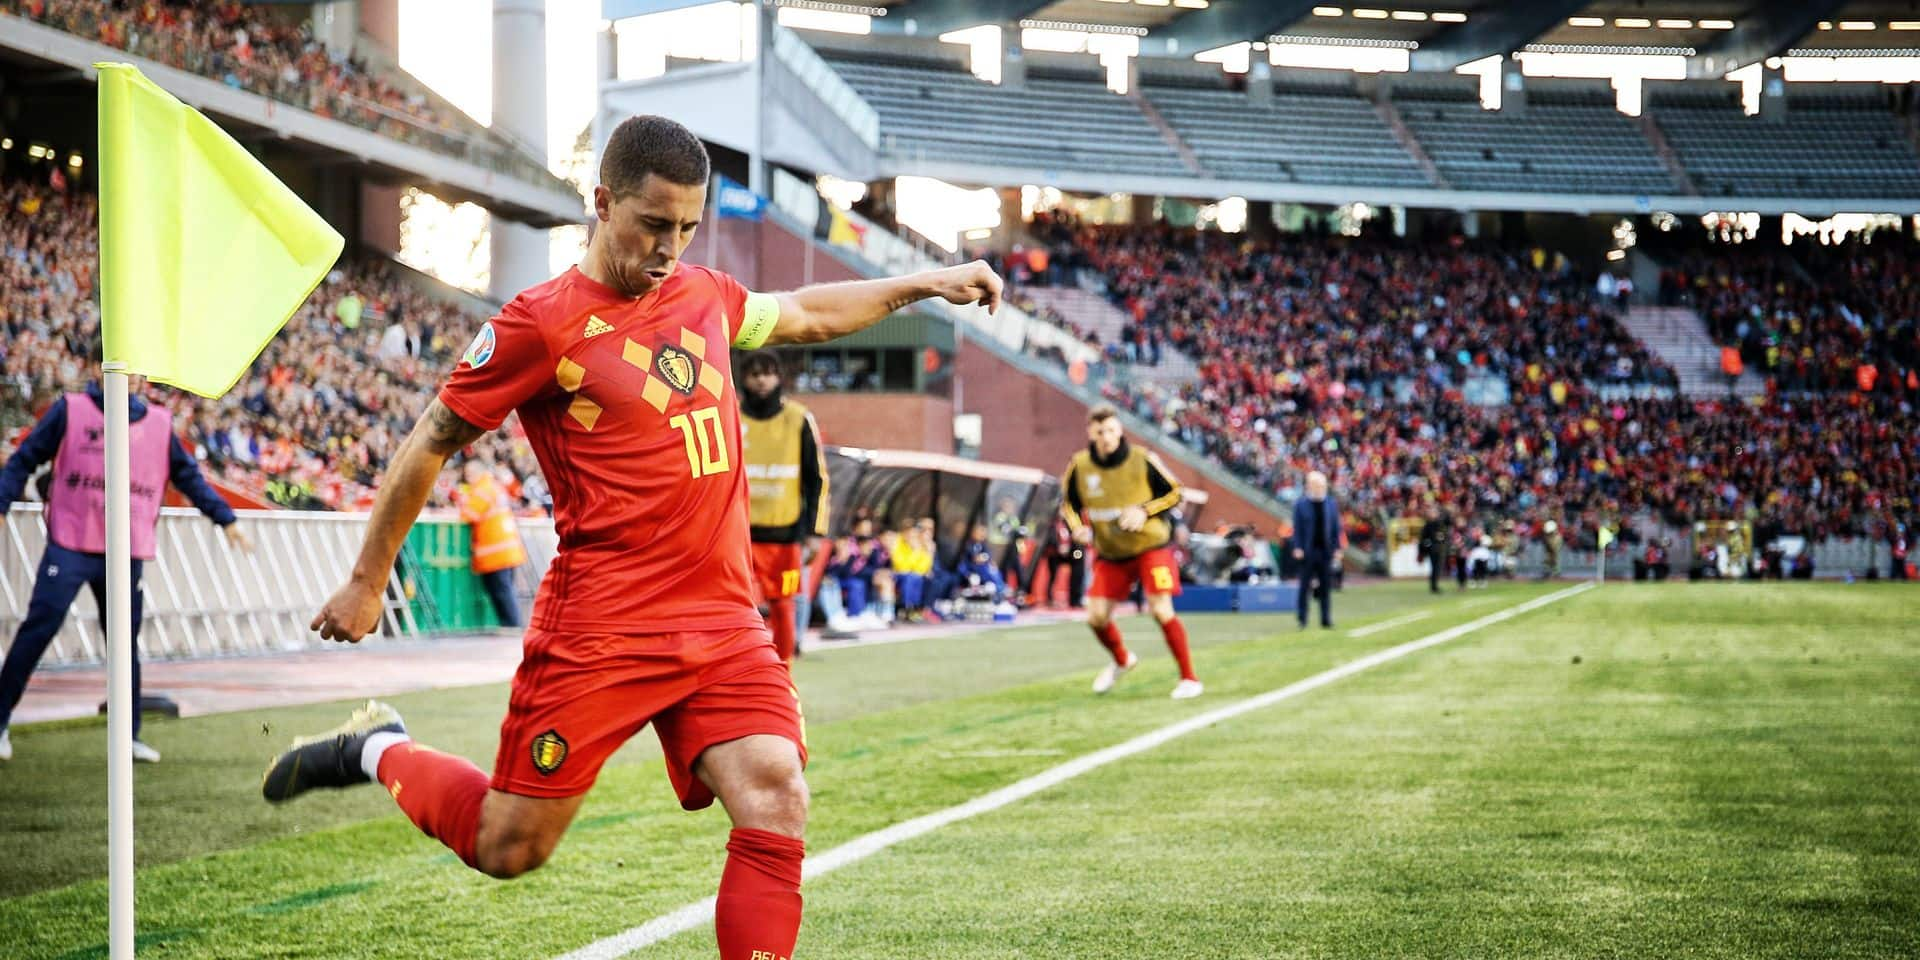 Belgium's Eden Hazard pictured during a soccer game between Belgian national team the Red Devils and the Republic of Kazakhstan, Saturday 08 June 2019 in Brussels, an UEFA Euro 2020 qualification game. BELGA PHOTO BRUNO FAHY